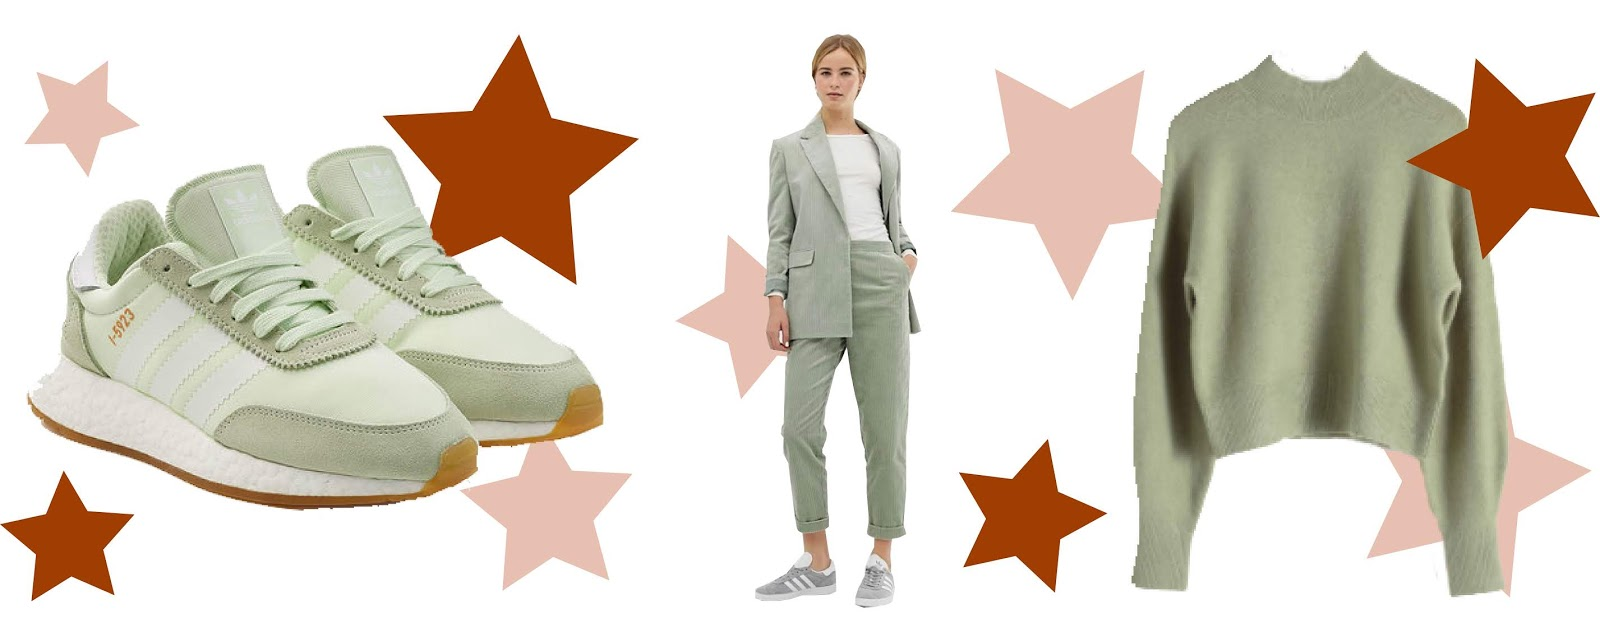 2019 trends collage sage green